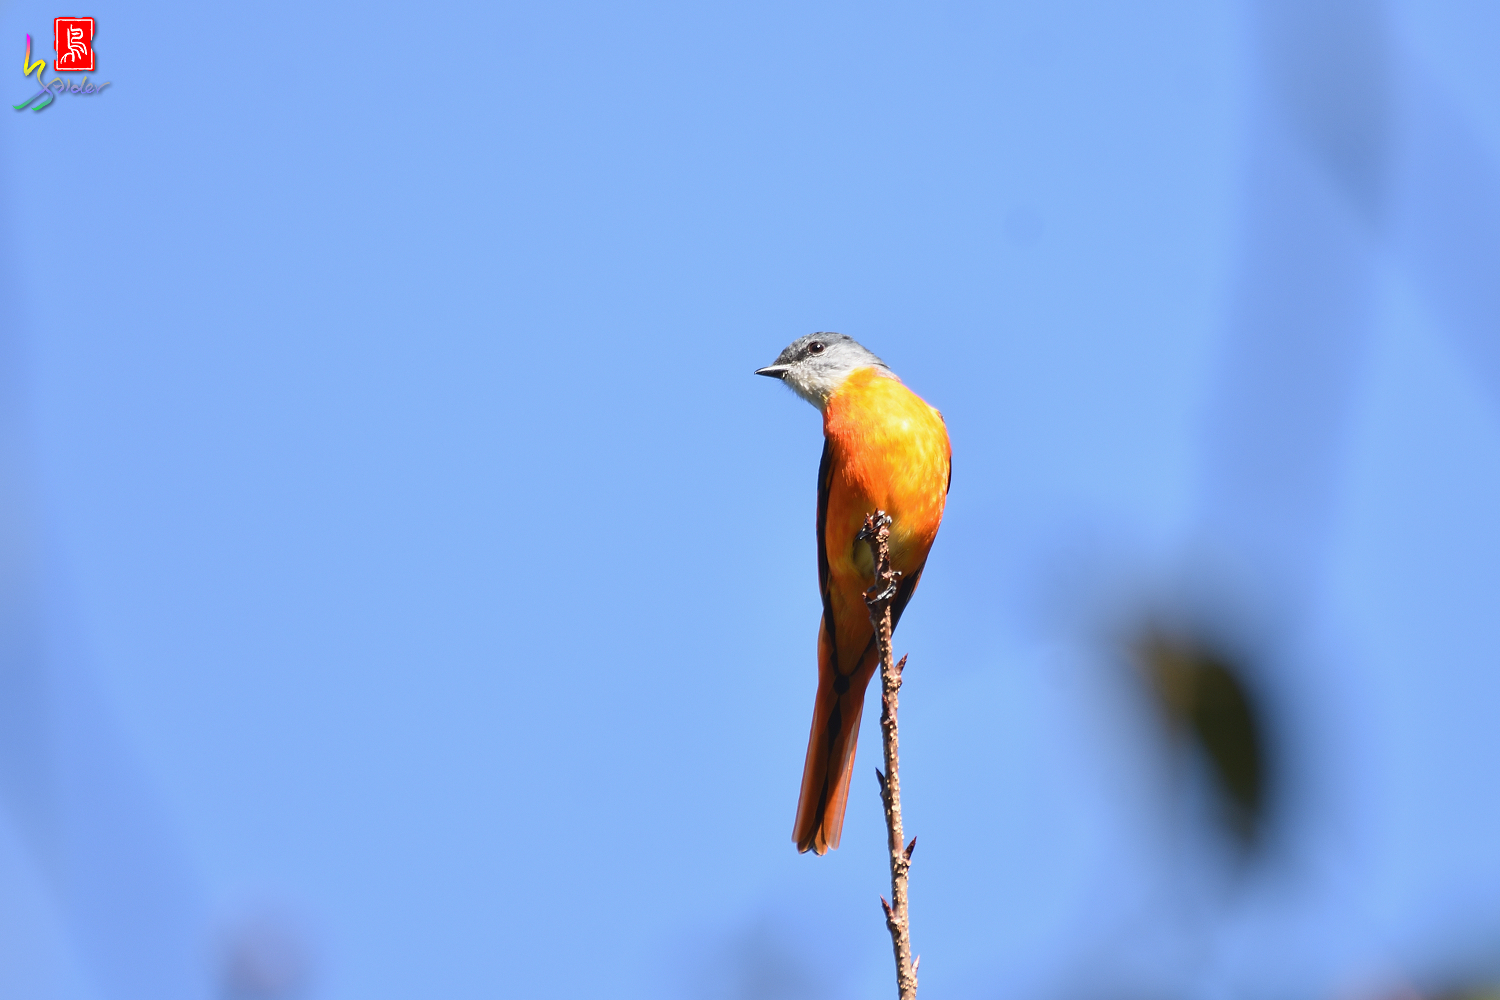 Gray-chinned_Minivet_5460